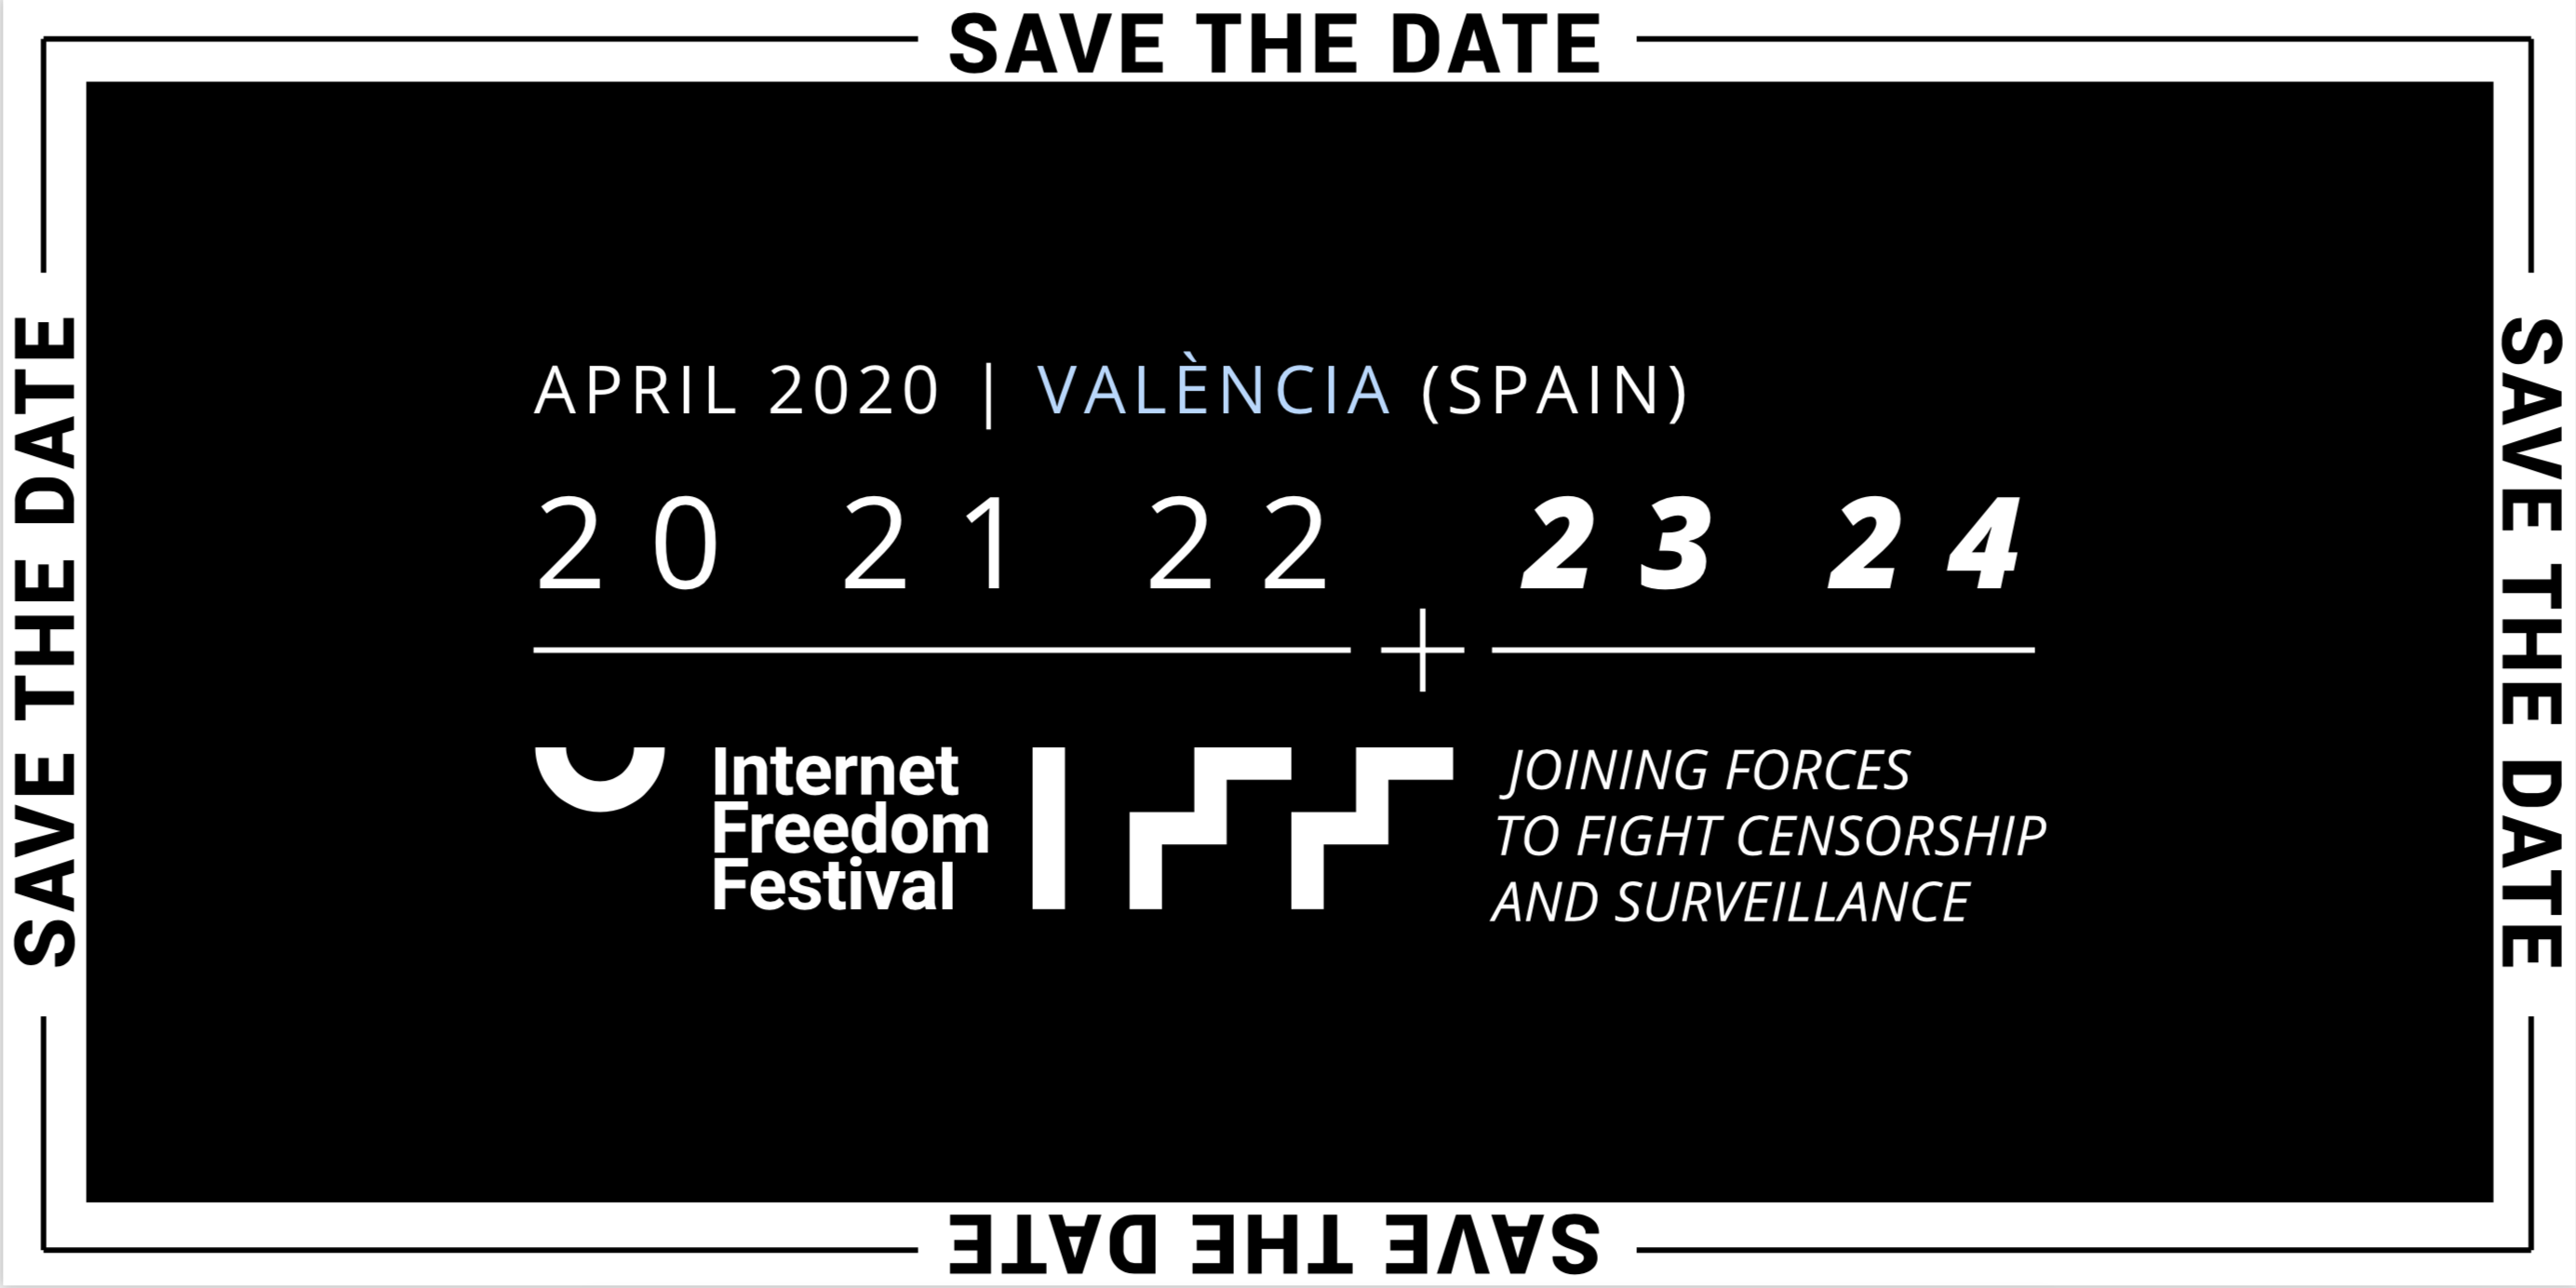 Internet Freedom Festival: Save the Date - April 20-24